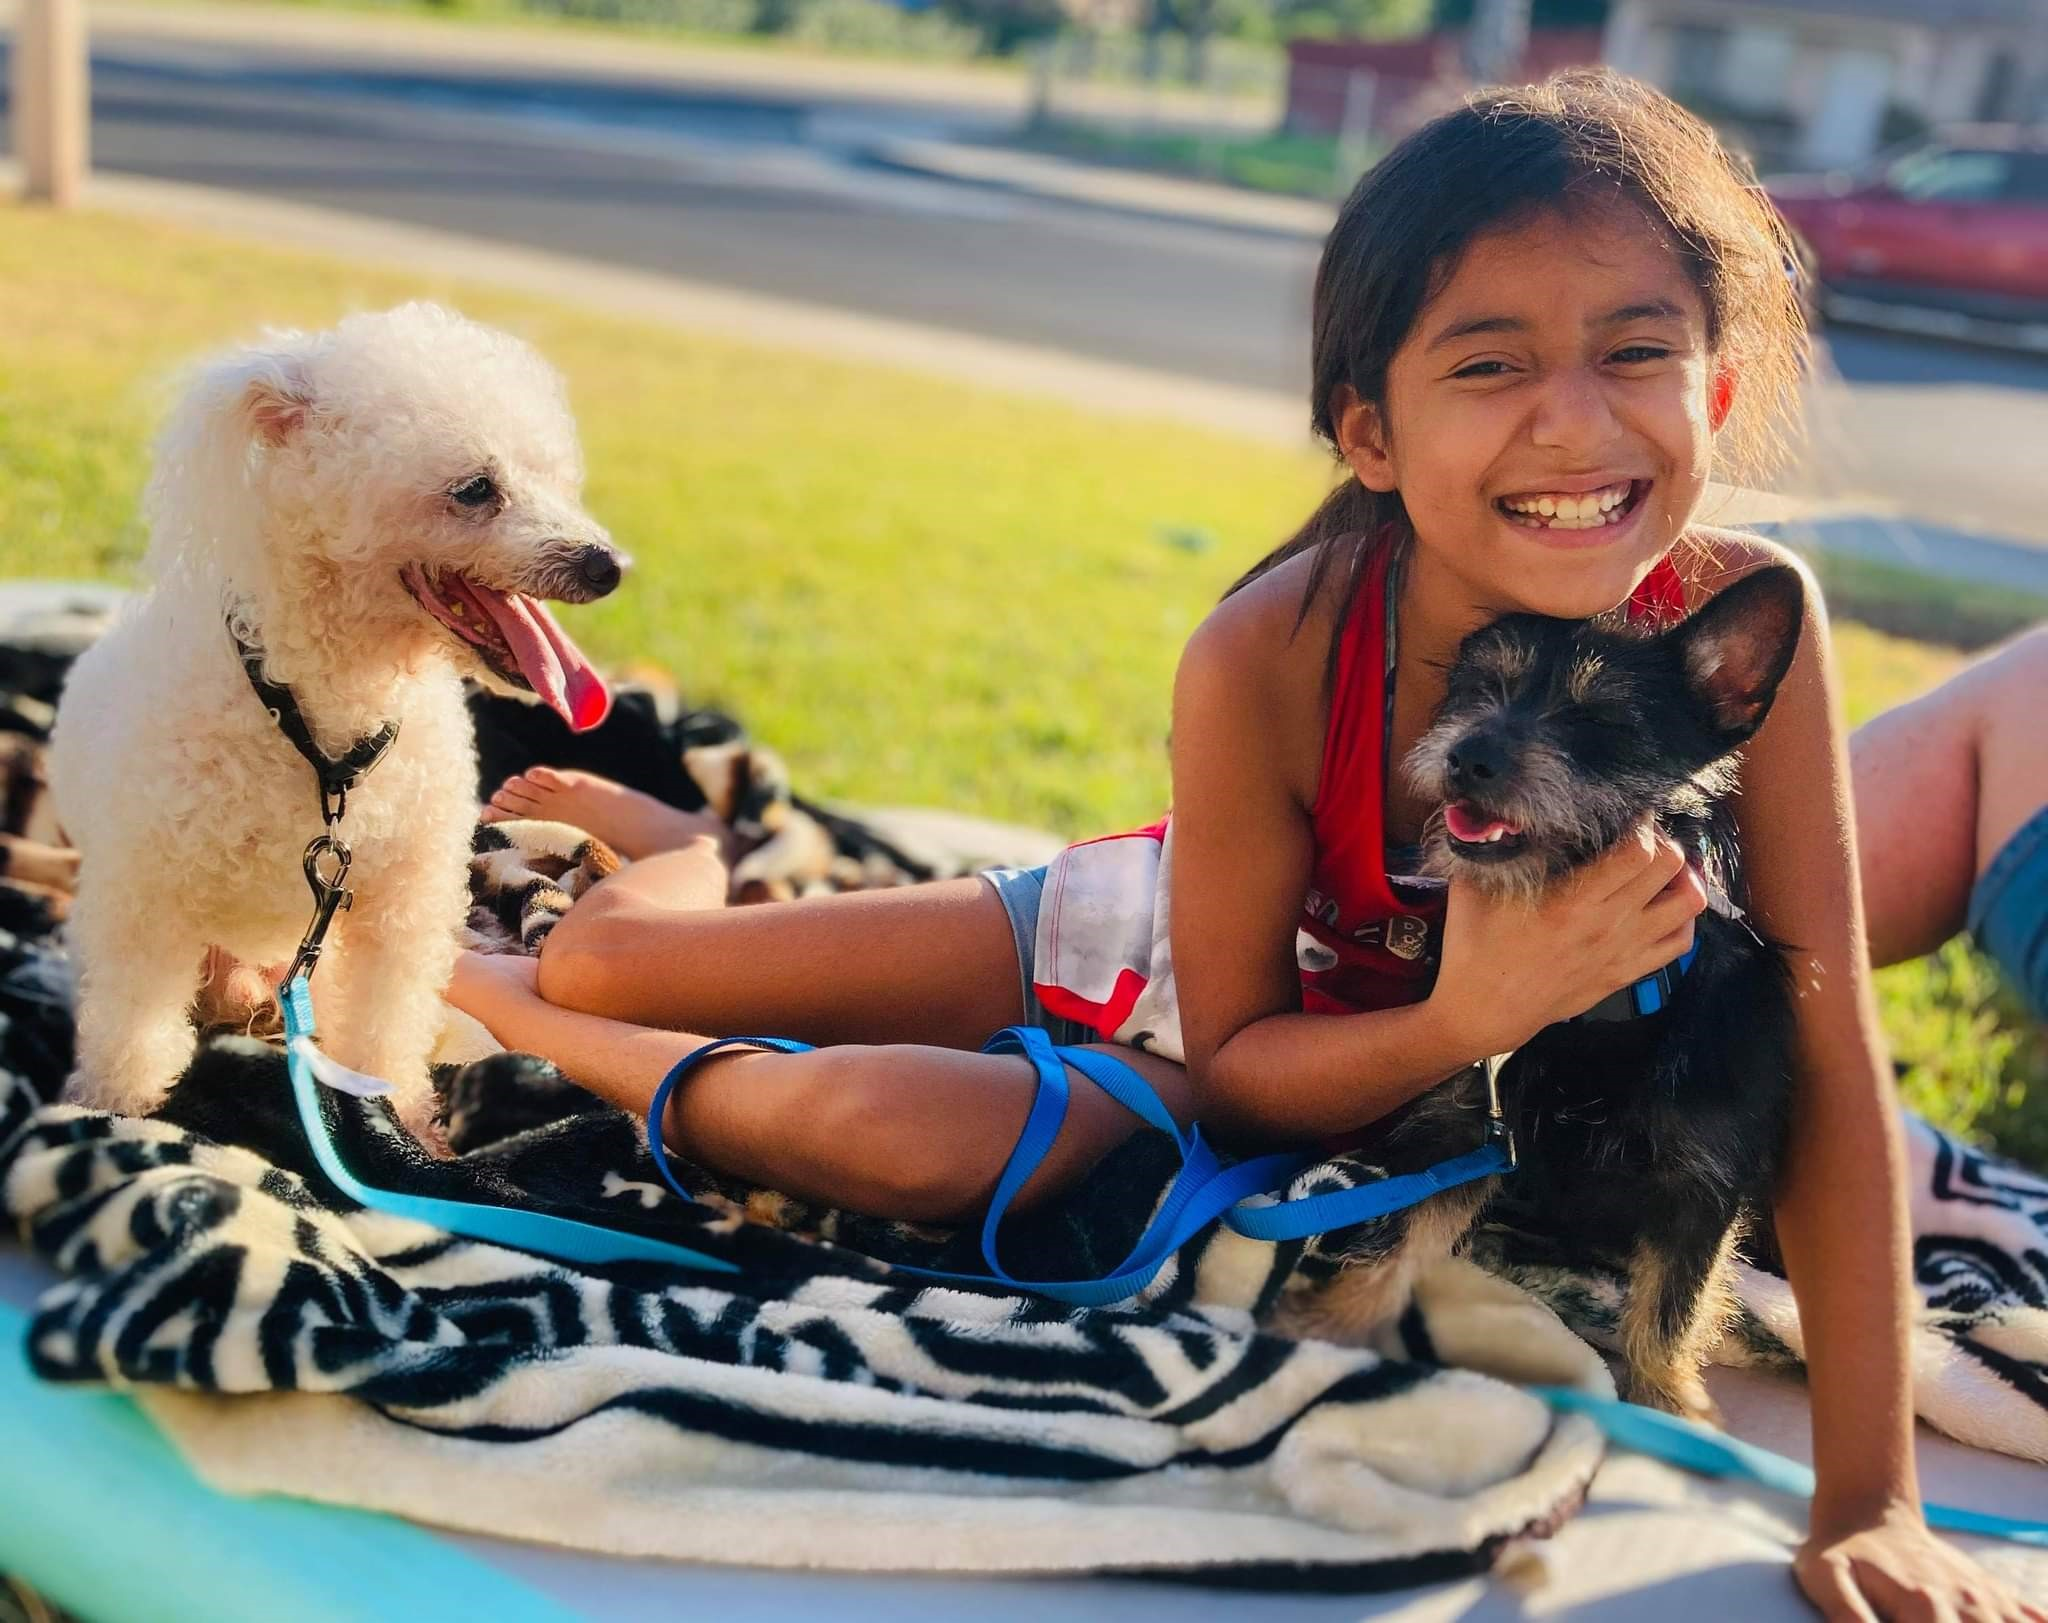 Girl with 2 small dogs